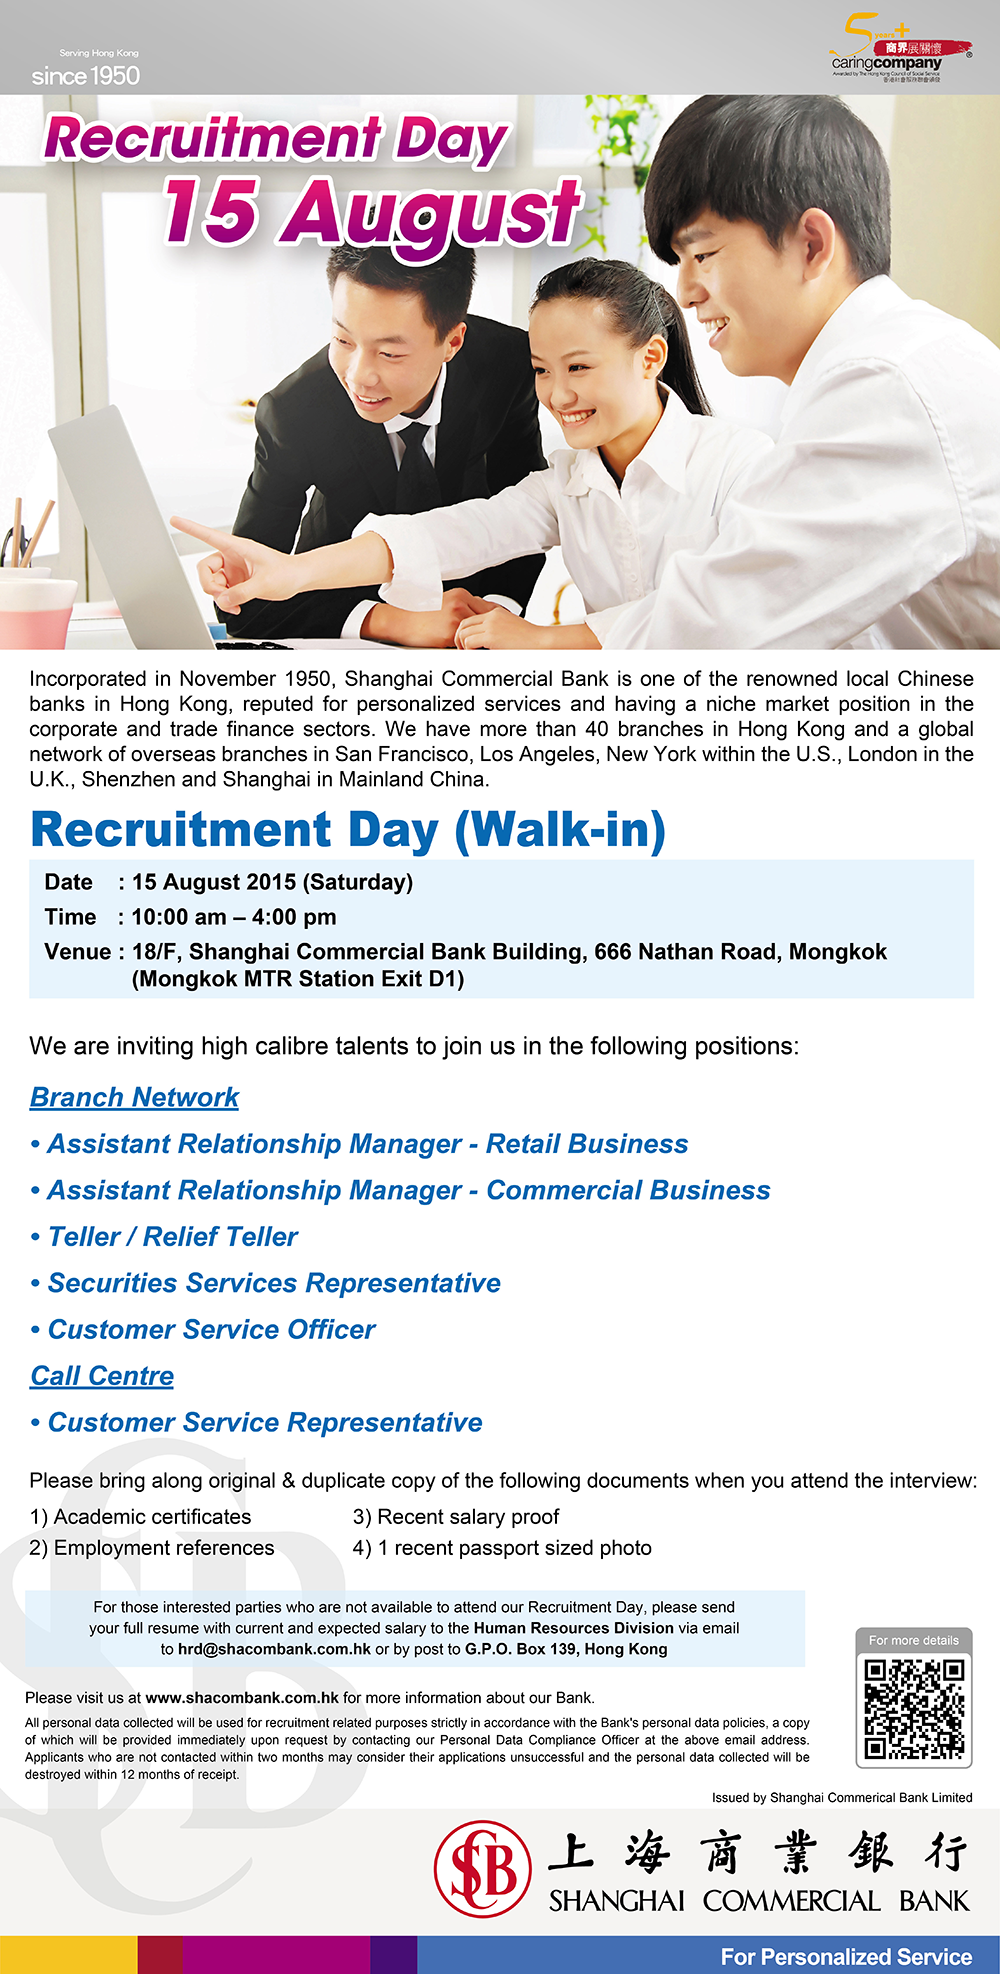 Recruitment Day (Walk-in) on 15 August 2015 offered by Shanghai Commercial Bank